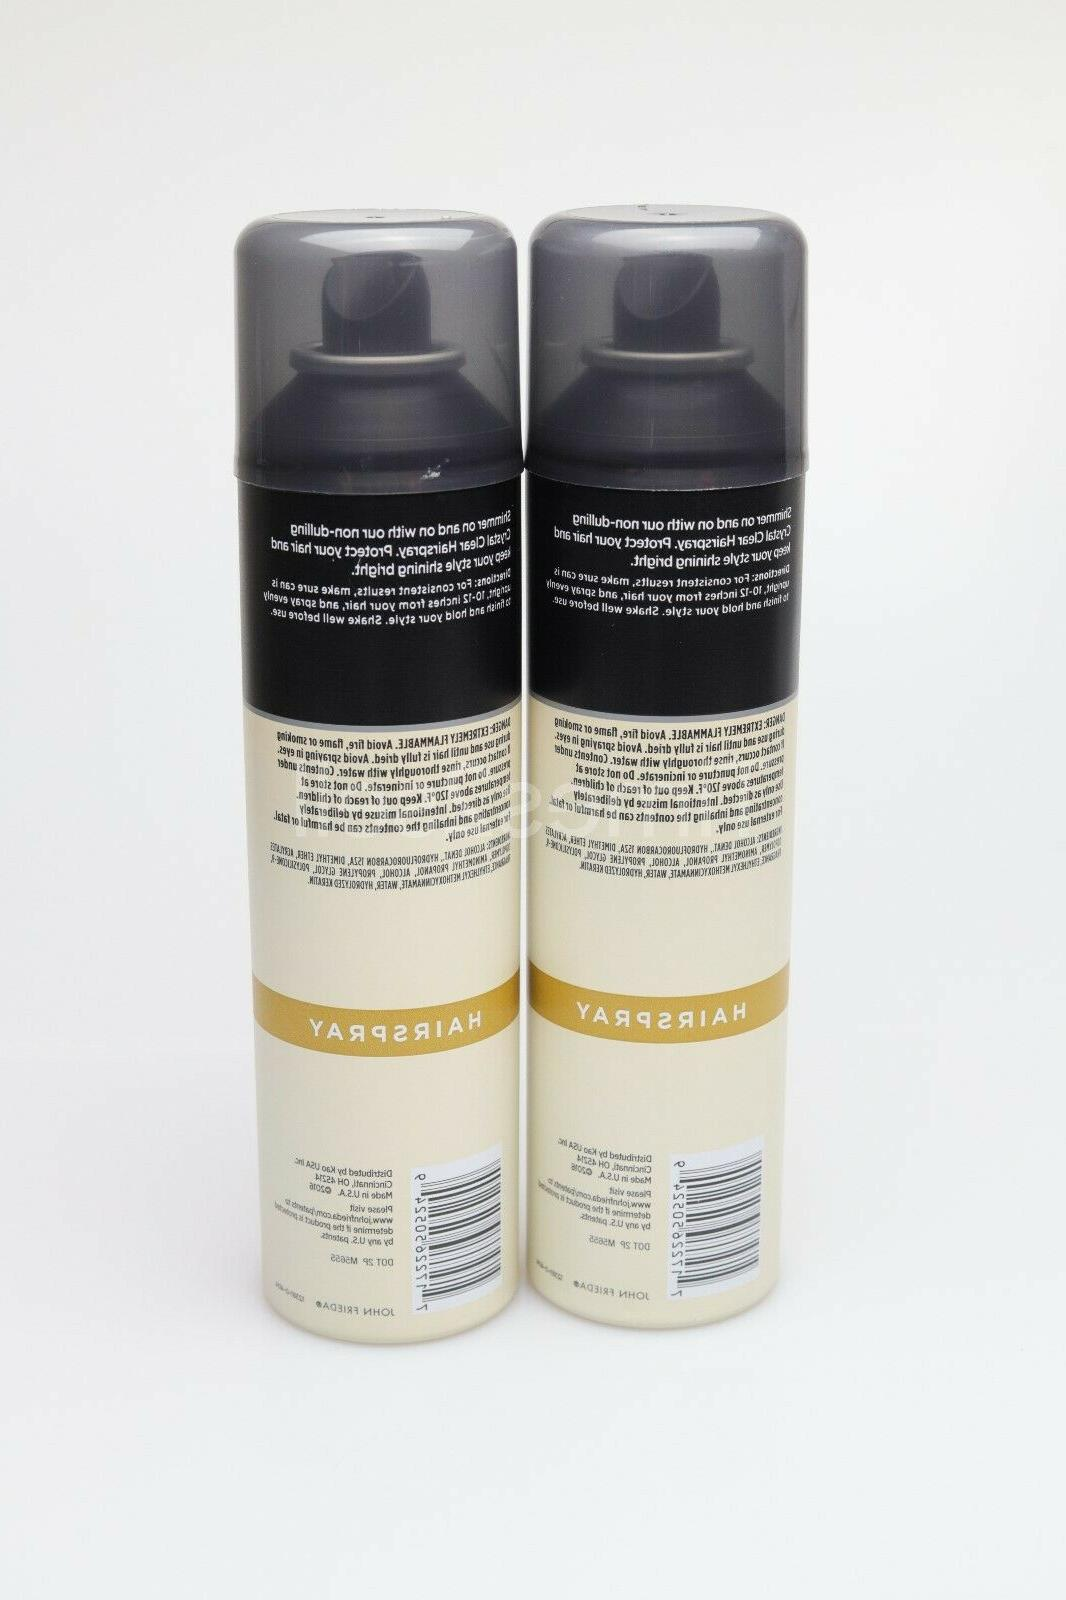 2 Sheer Blonde Crystal Hairspray